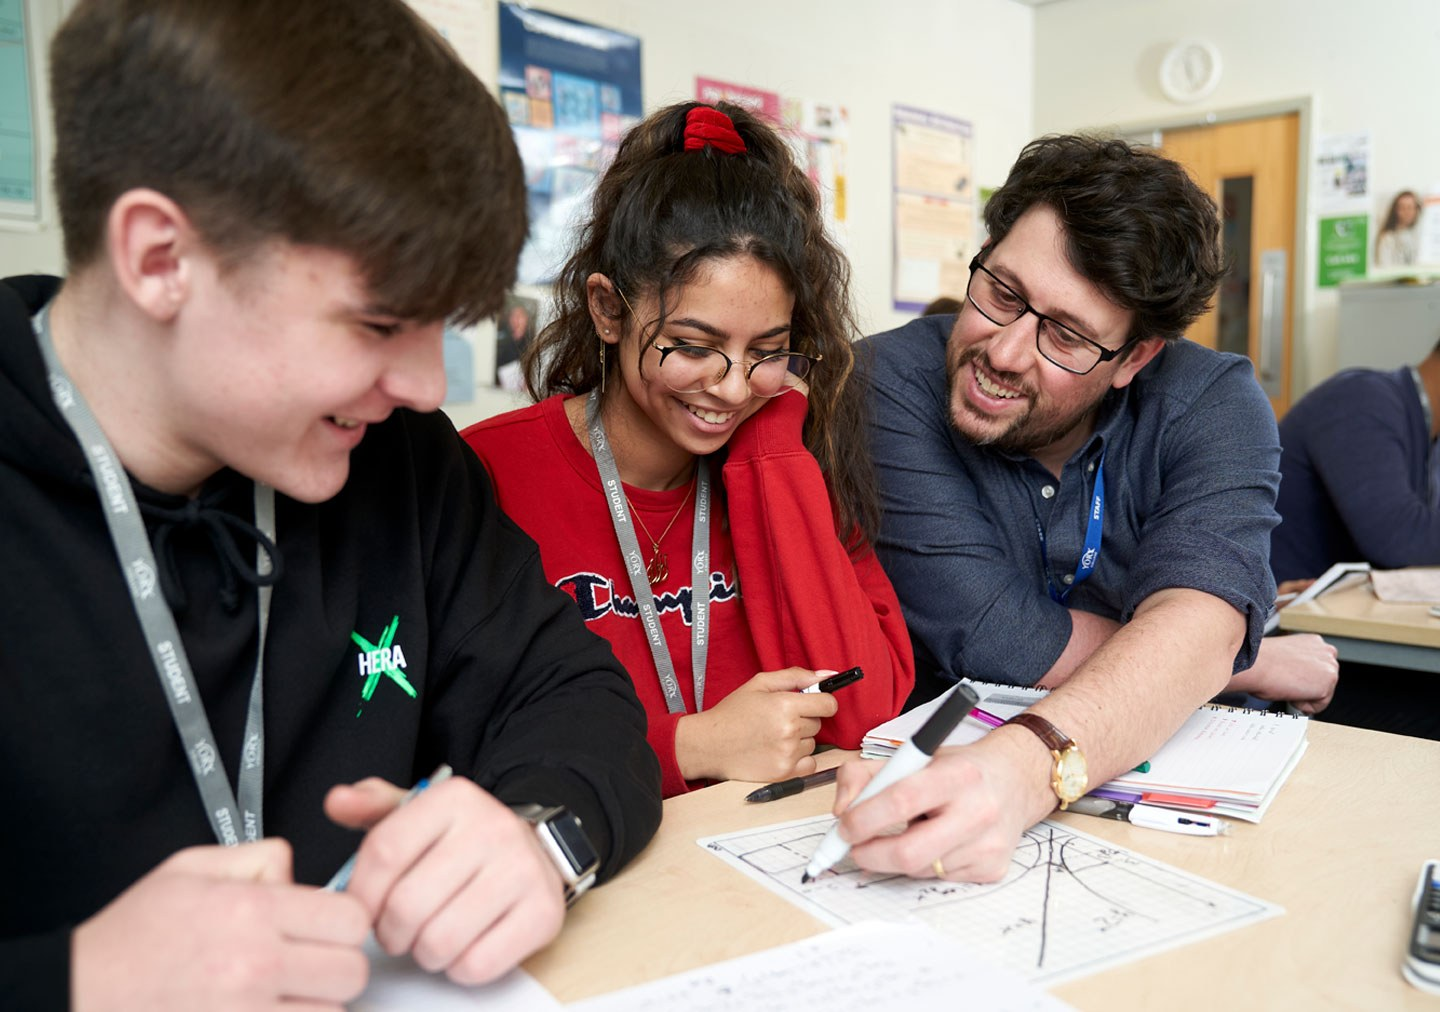 A tutor is helping two students with their work and is drawing a graph they are all smiling